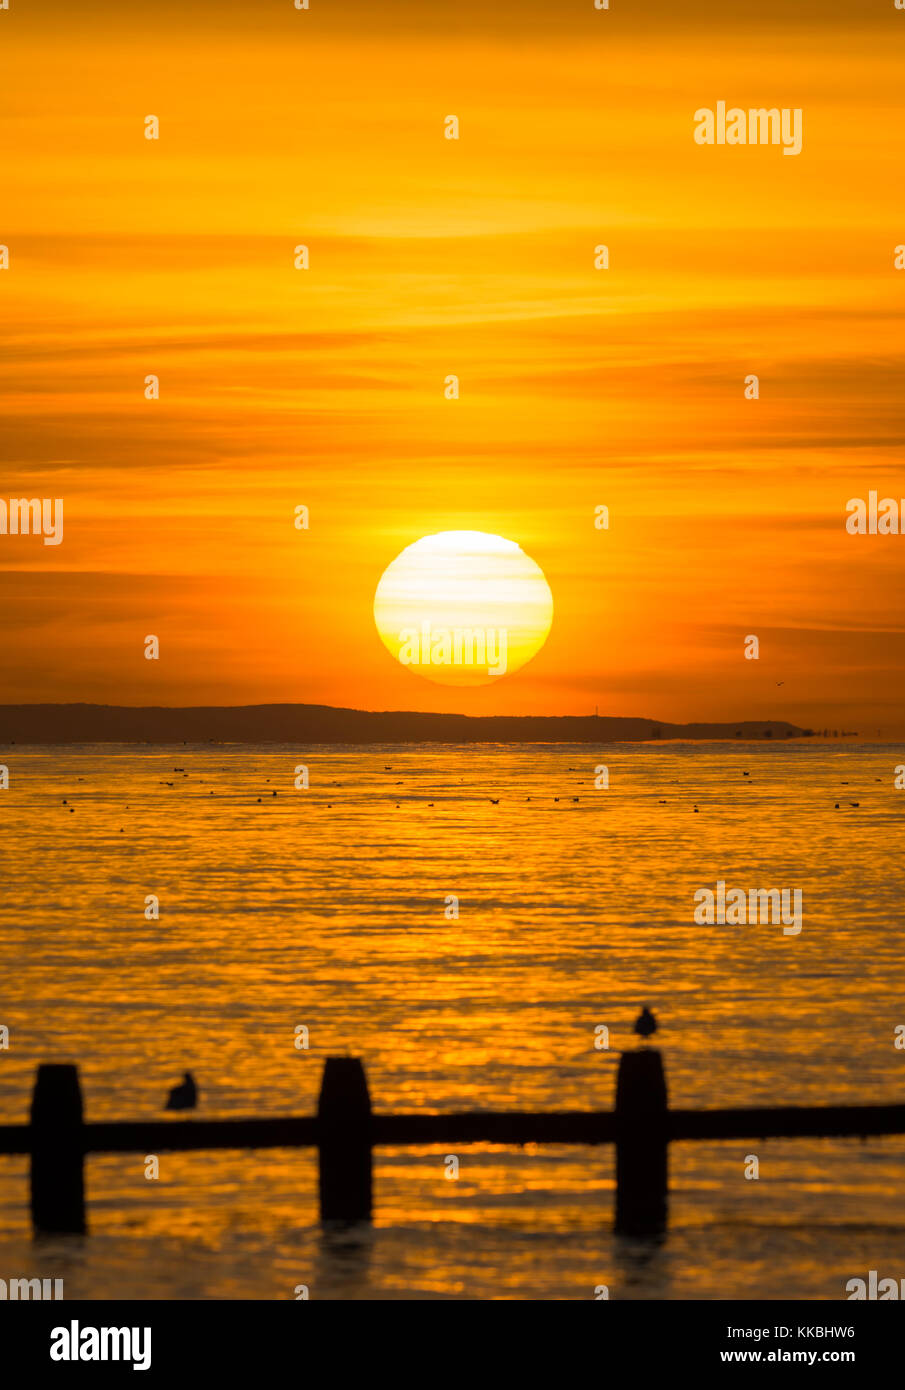 Sun setting over the sea just above the horizon, on the UK south coast. - Stock Image